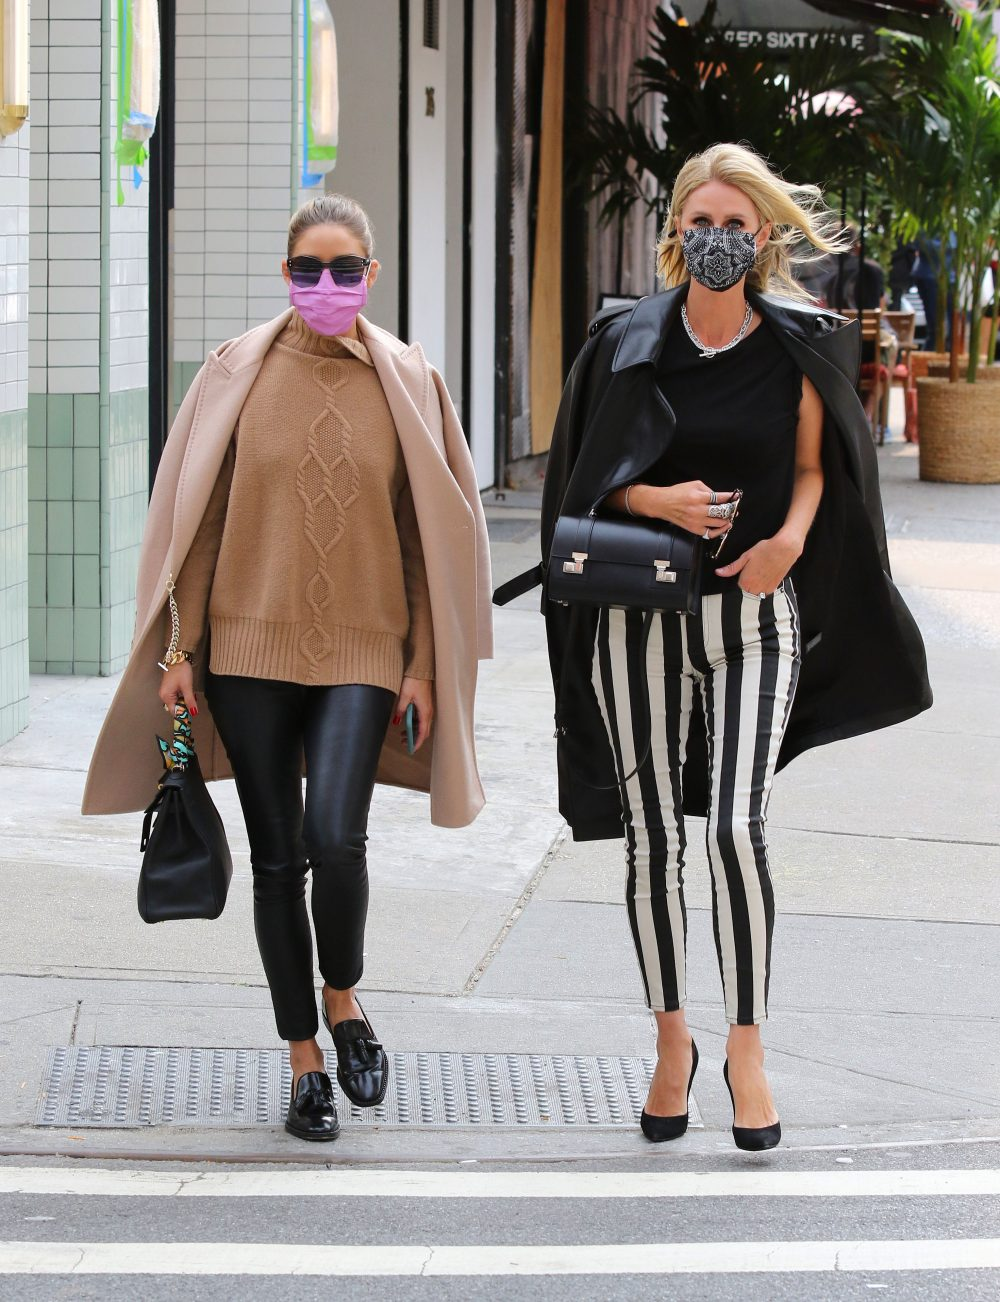 Nicky Hilton and Olivia Palermo look super stylish after having lunch together in NYC